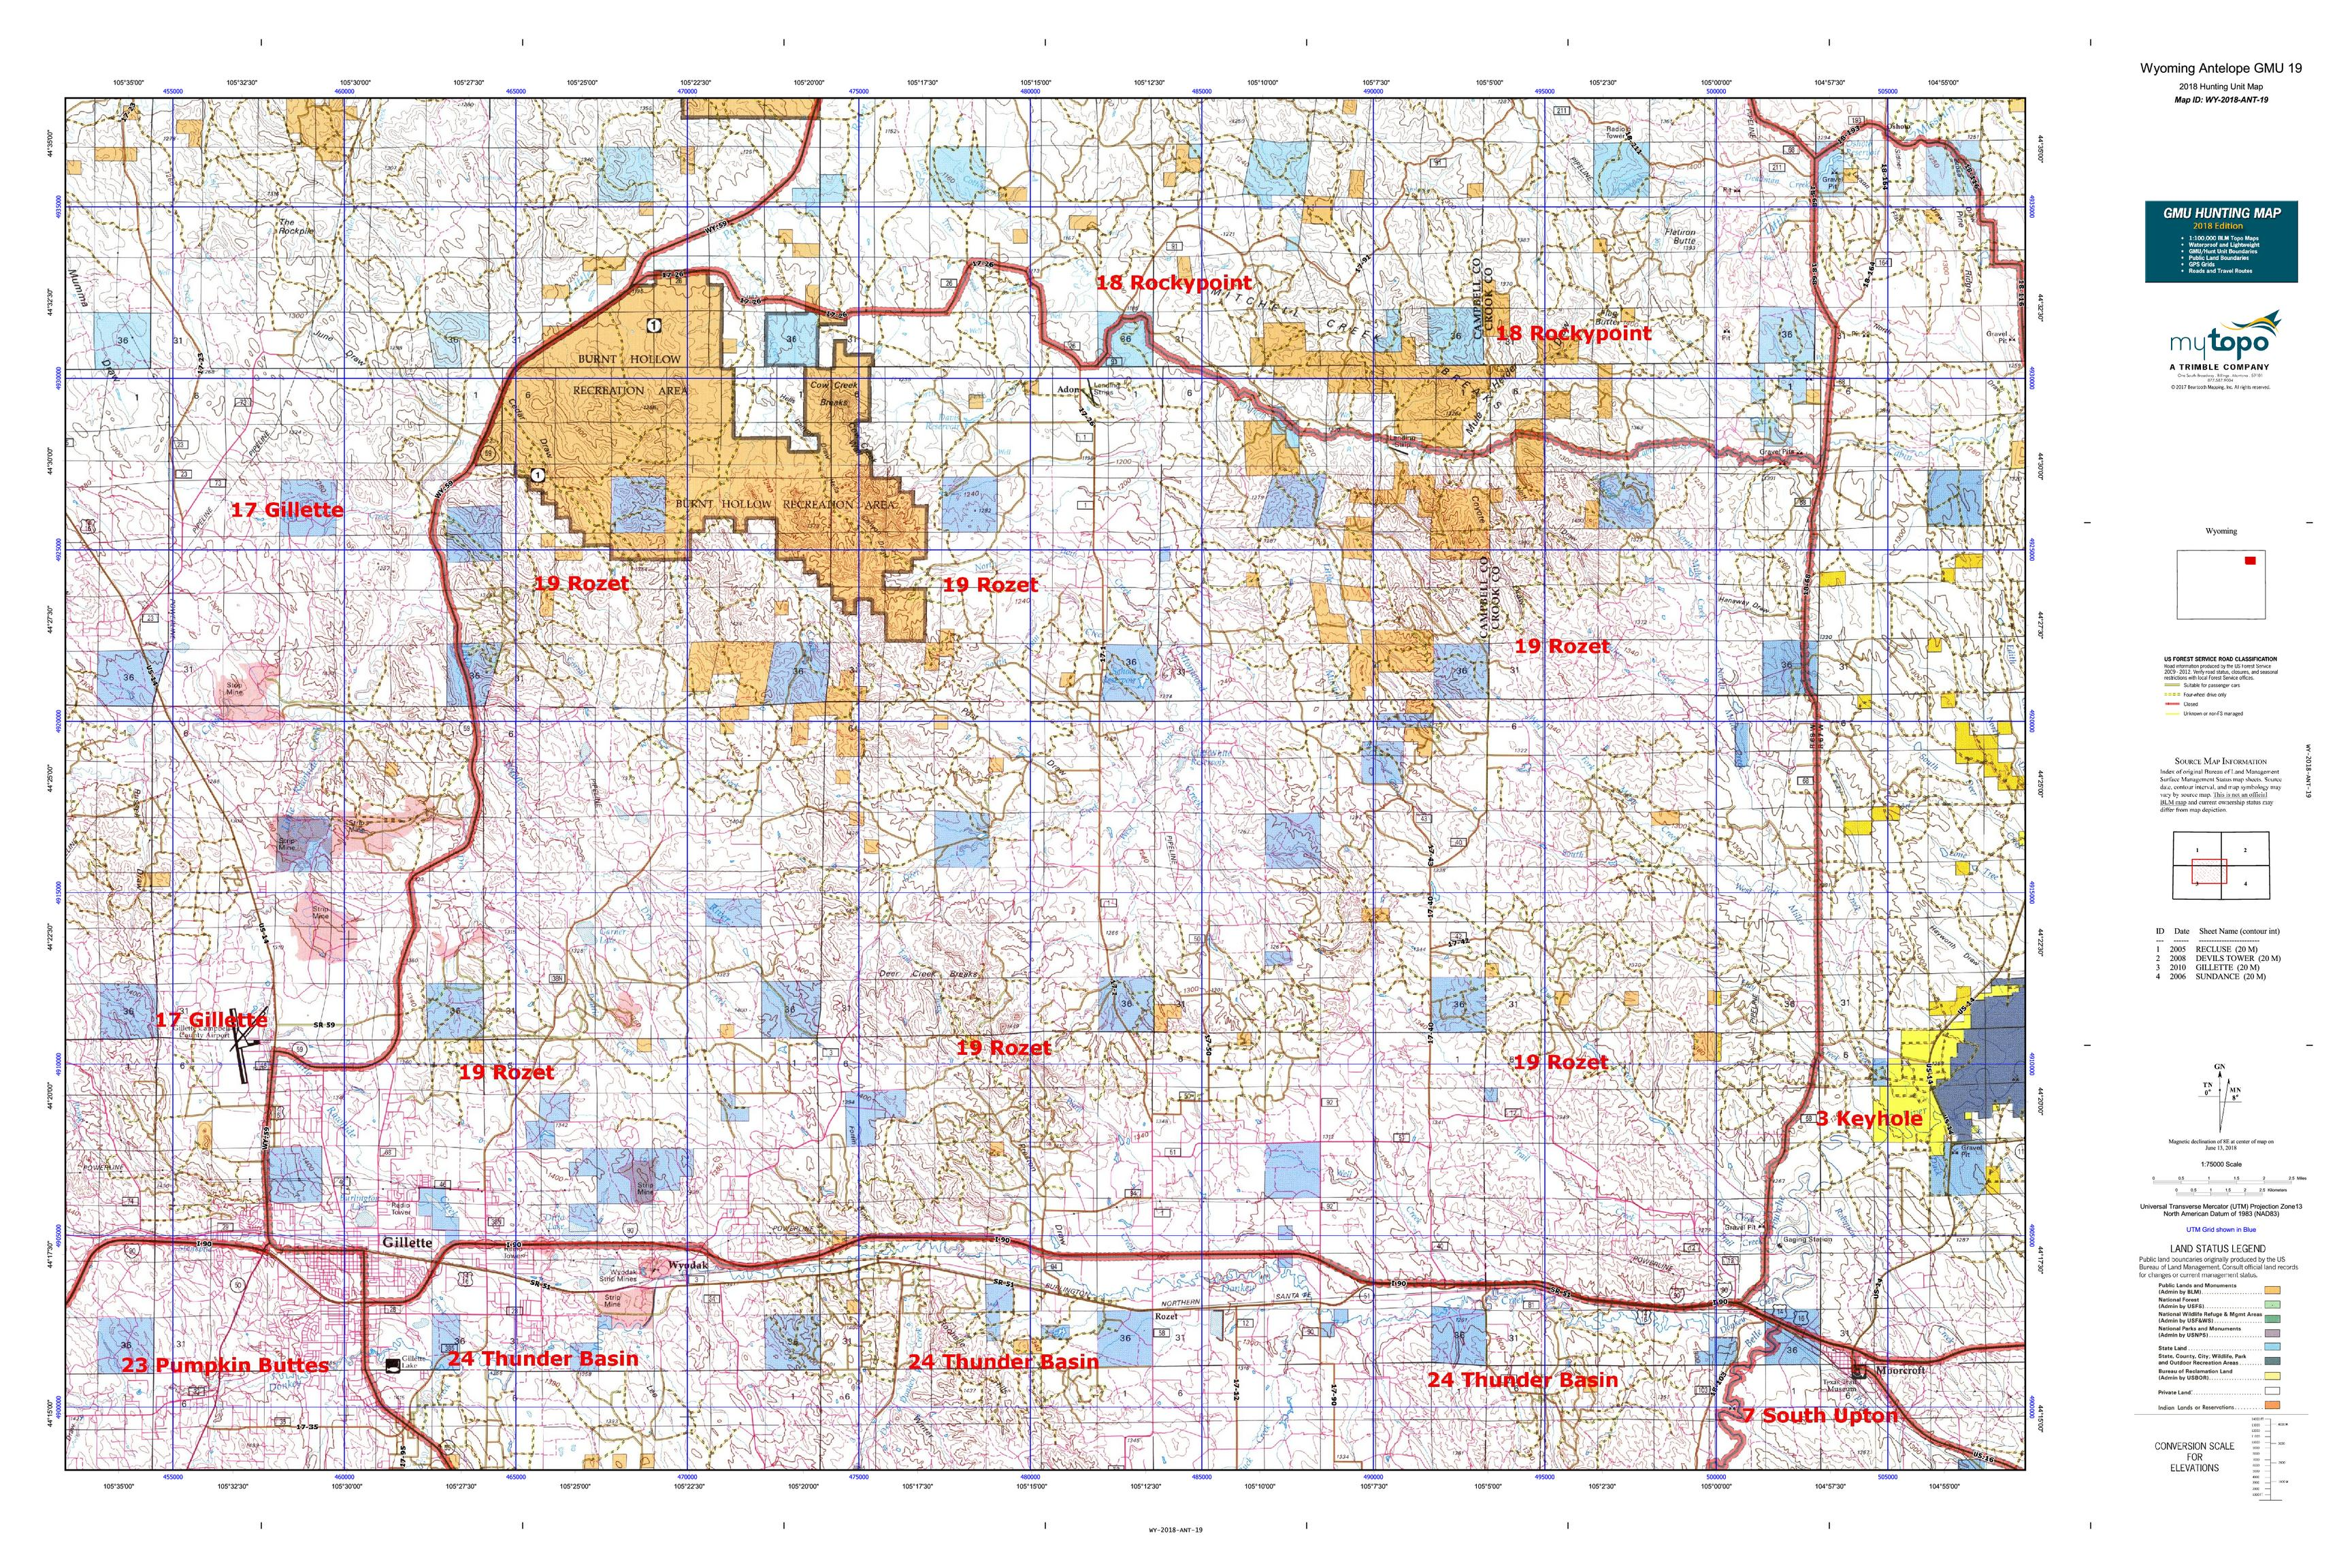 Wyoming Antelope Unit Map Wyoming Antelope GMU 19 Map | MyTopo